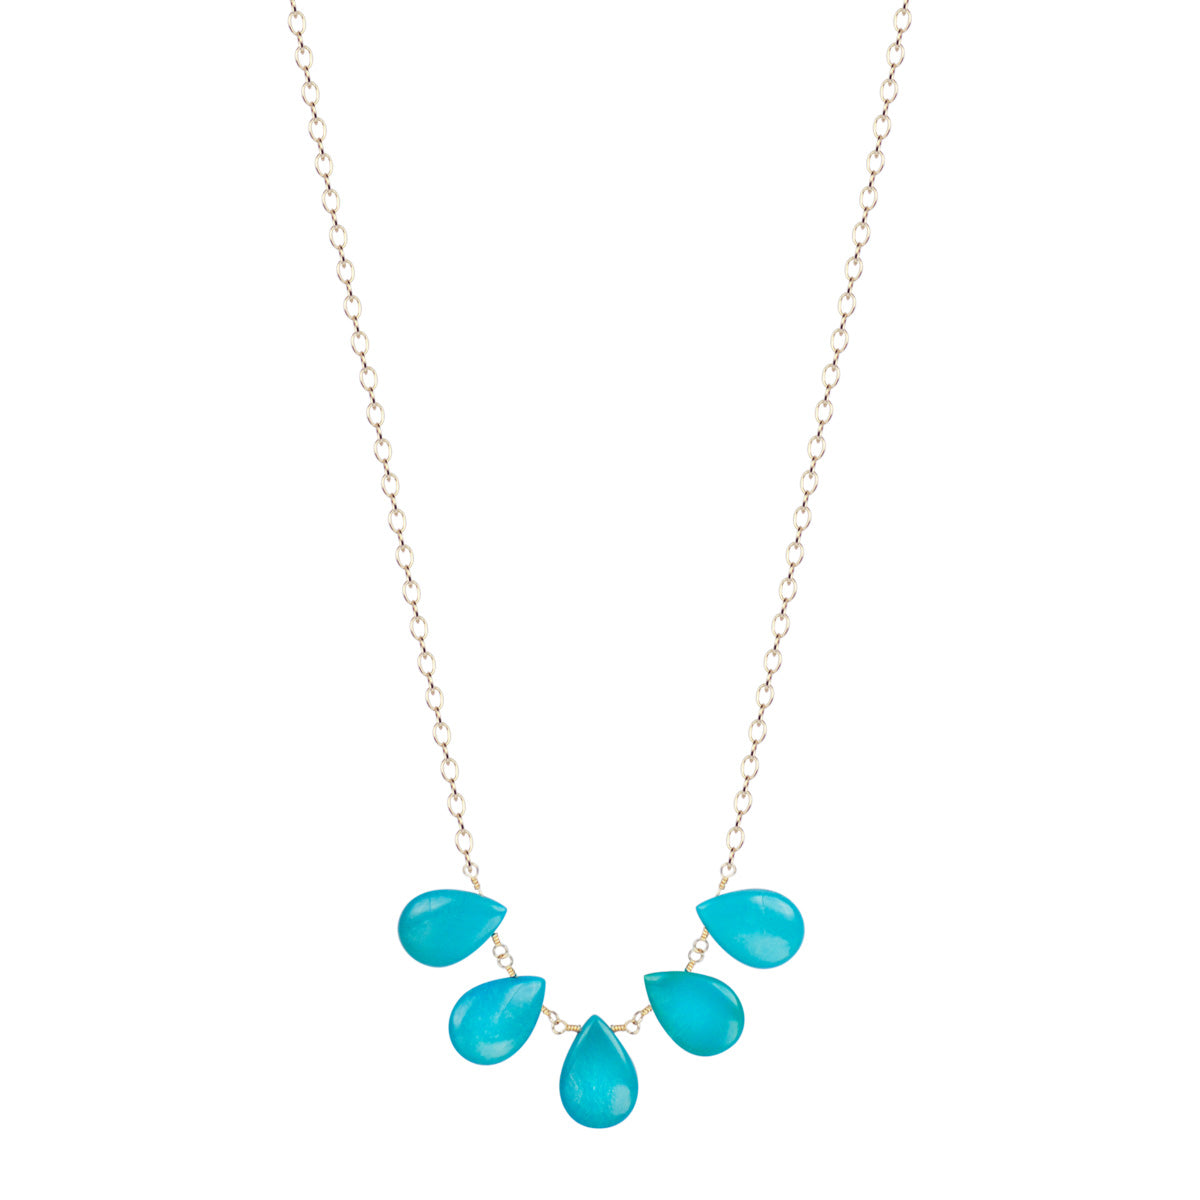 10K Gold 5 Large Turquoise Teardrops on Chain